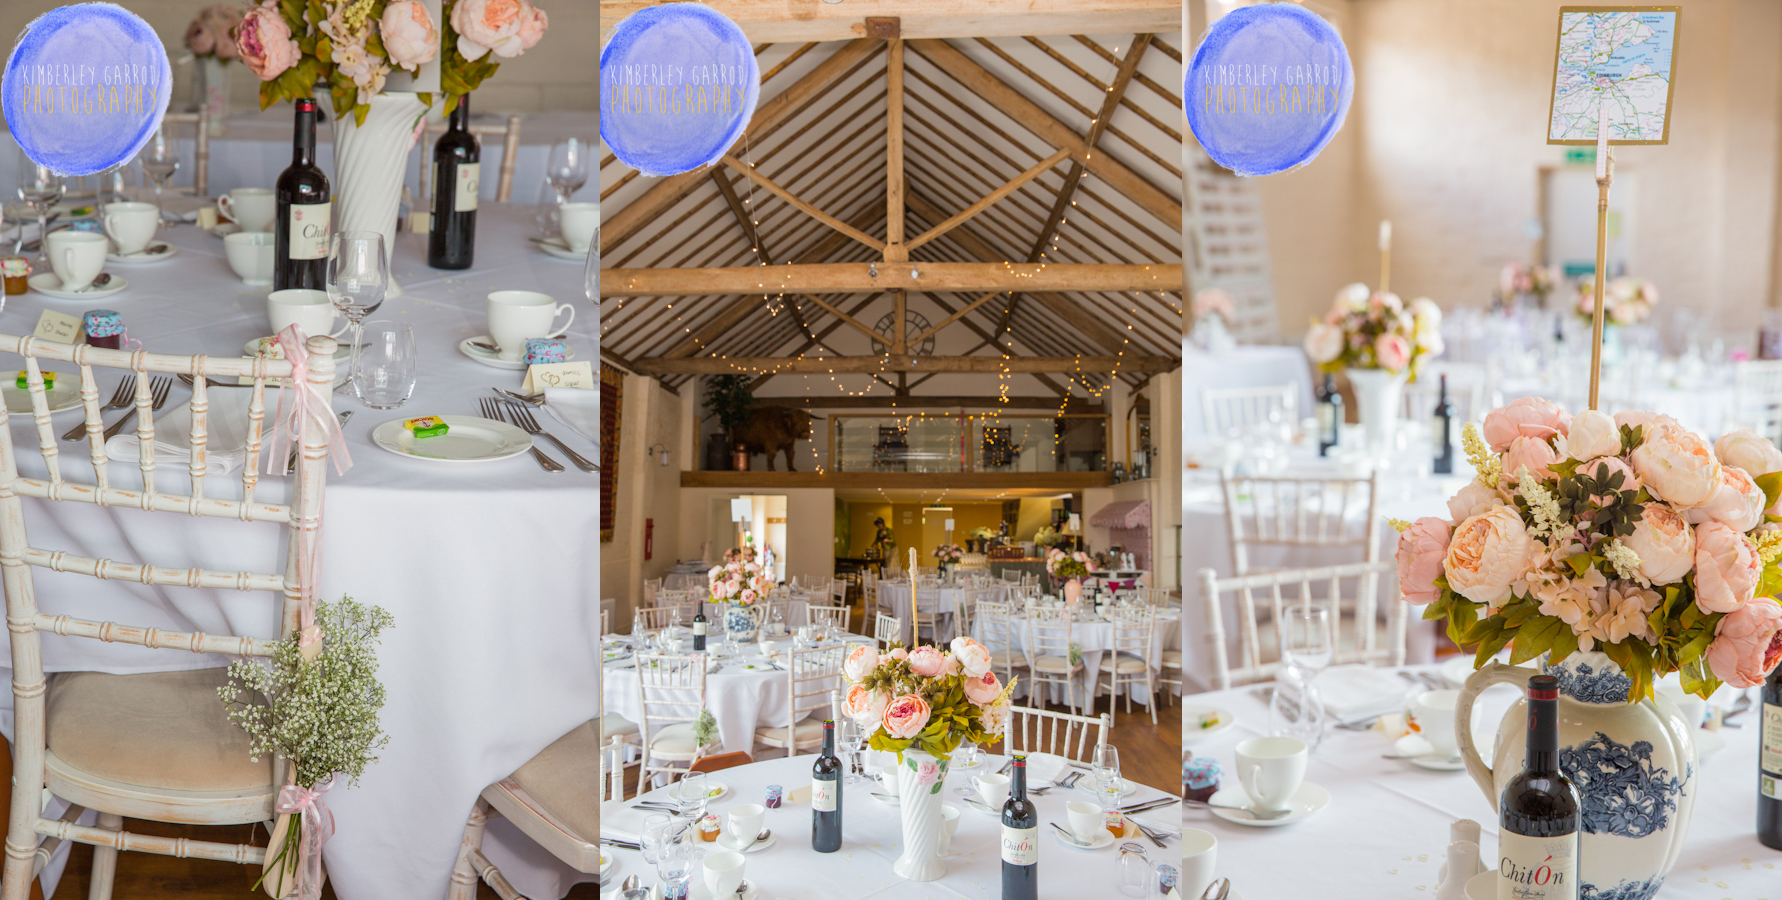 The Old Dairy Hatherden Farm Wedding Photographer Kimberley Garrod-4